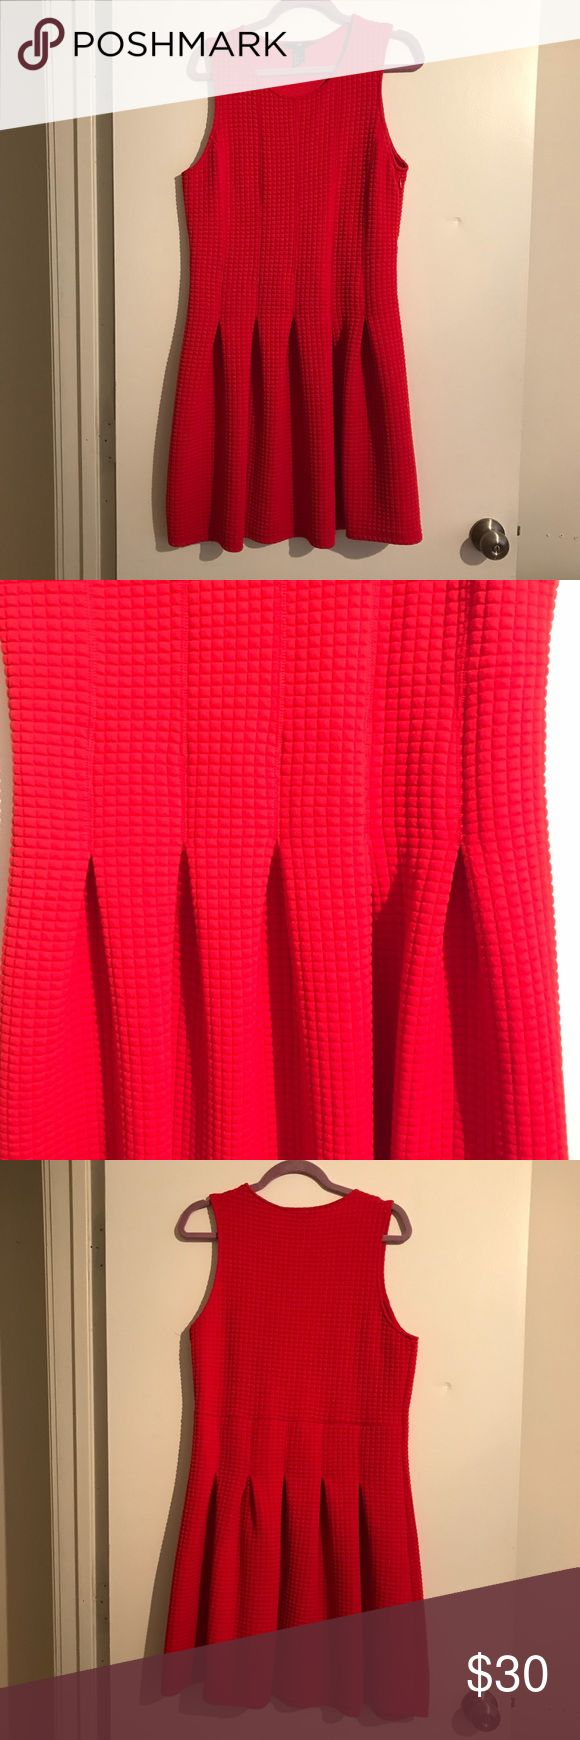 H&M Cherry Red Drop-waist Dress EEUC H&M cherry red drop-waist dress with pleating detail on skirt. Small quilted fabric with stretch, hidden side zipper, crewneck, sleeveless. Super flattering and comfortable. Size L H&M Dresses